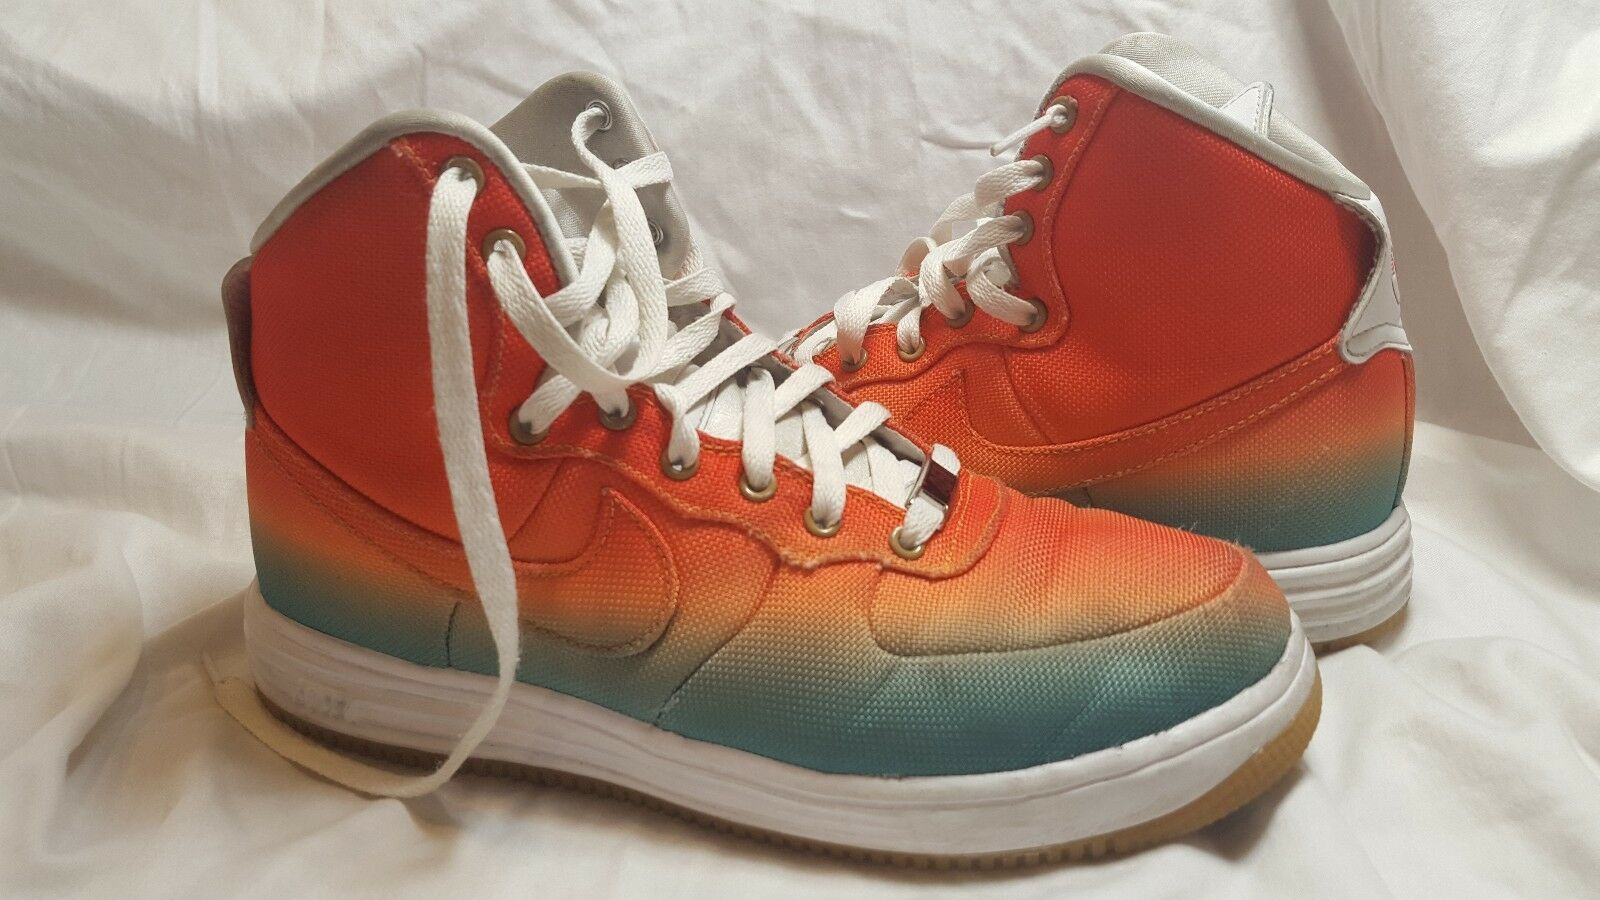 Nike Air Force Lunar Force 1 Basketball Duckboot Rare Tropical Gradient Size 8